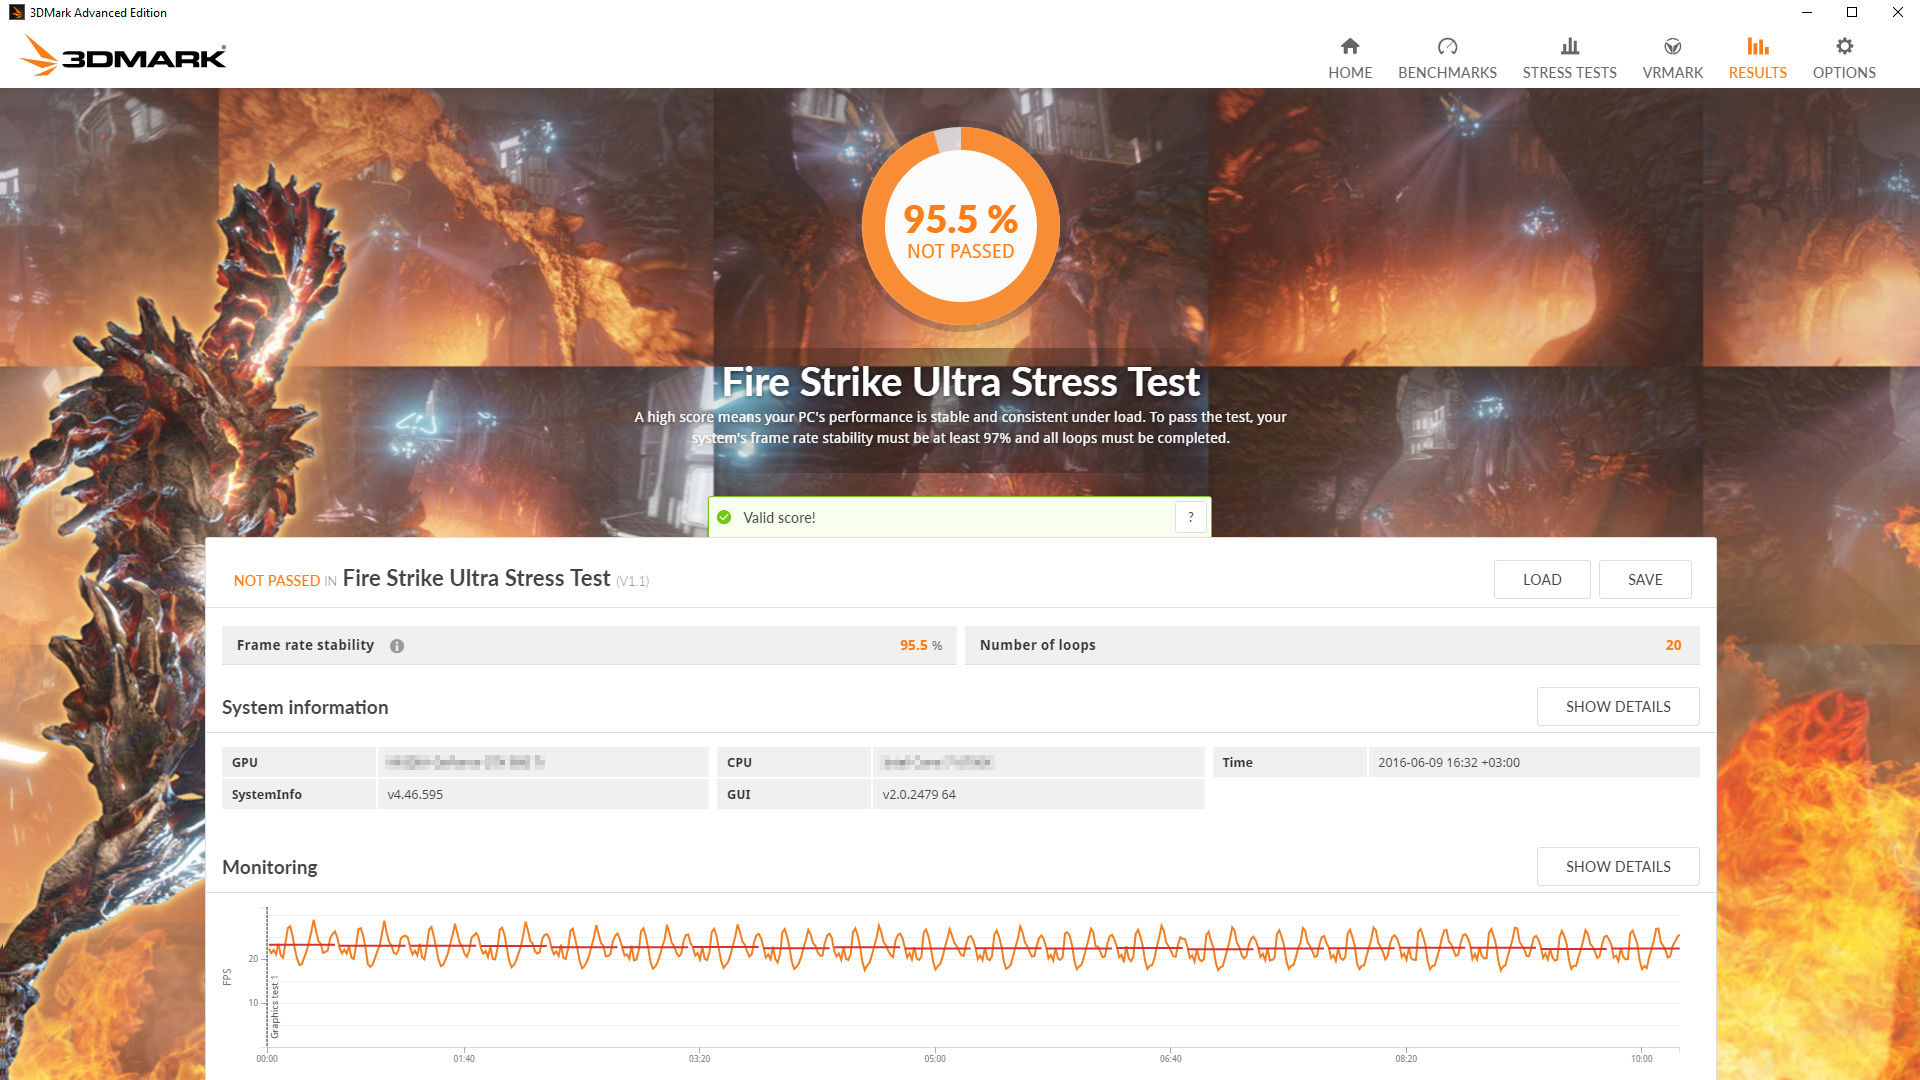 Futuremark: Dedizierter Stresstest in 3DMark - Notebookcheck.com News